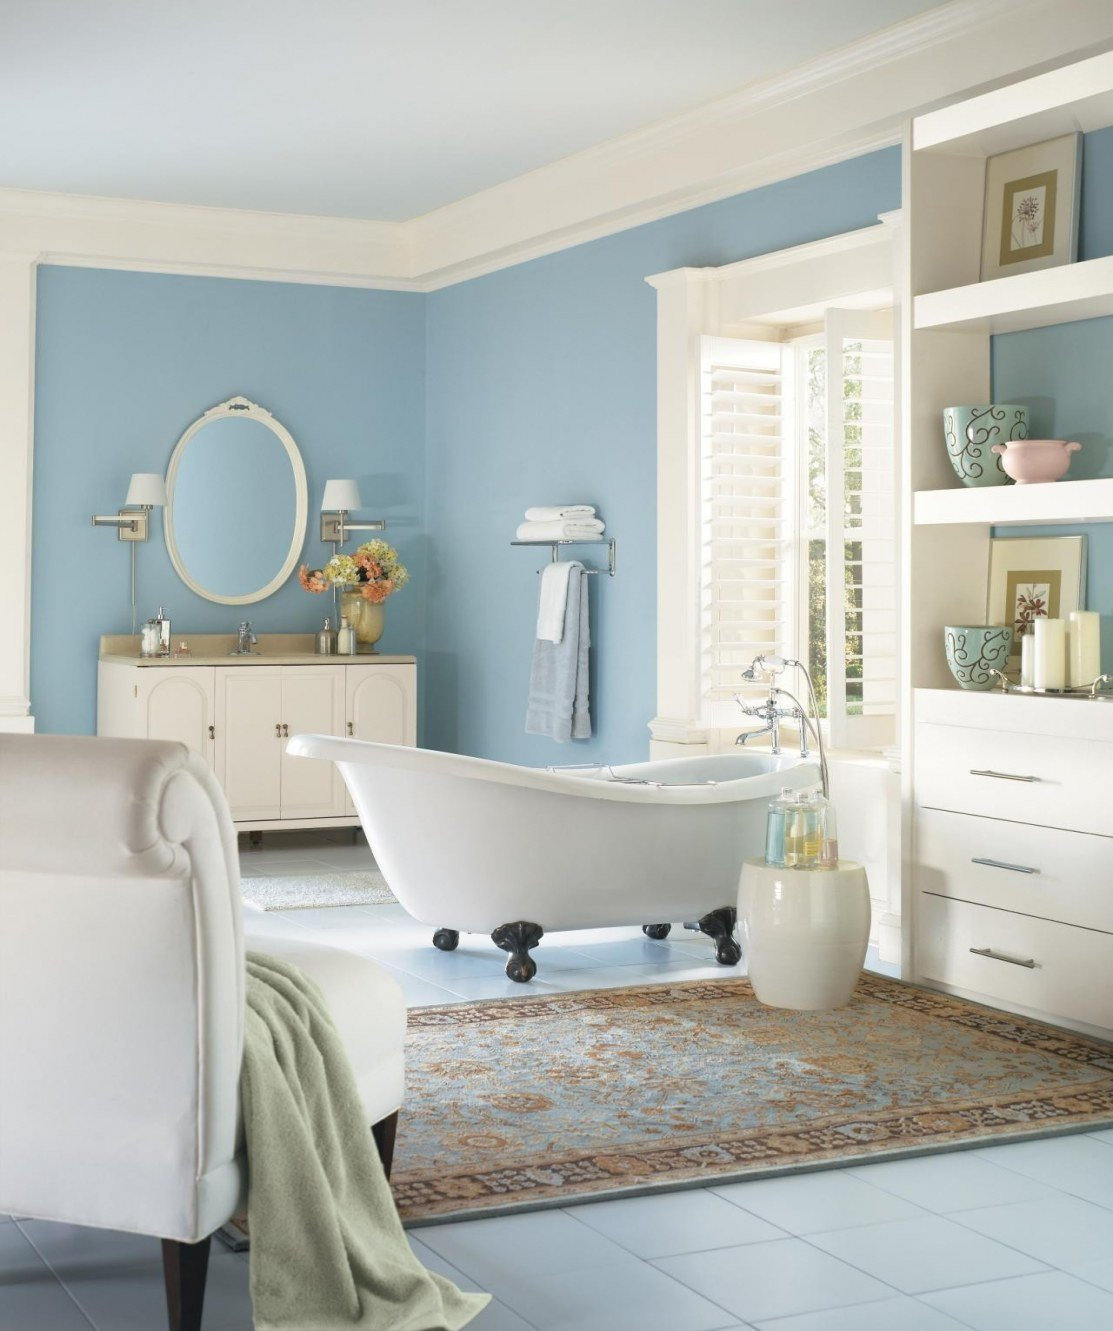 Blue and White Bedroom Ideas Luxury Blue Bedroom Decor Blue and White Bathroom Decorating Ideas